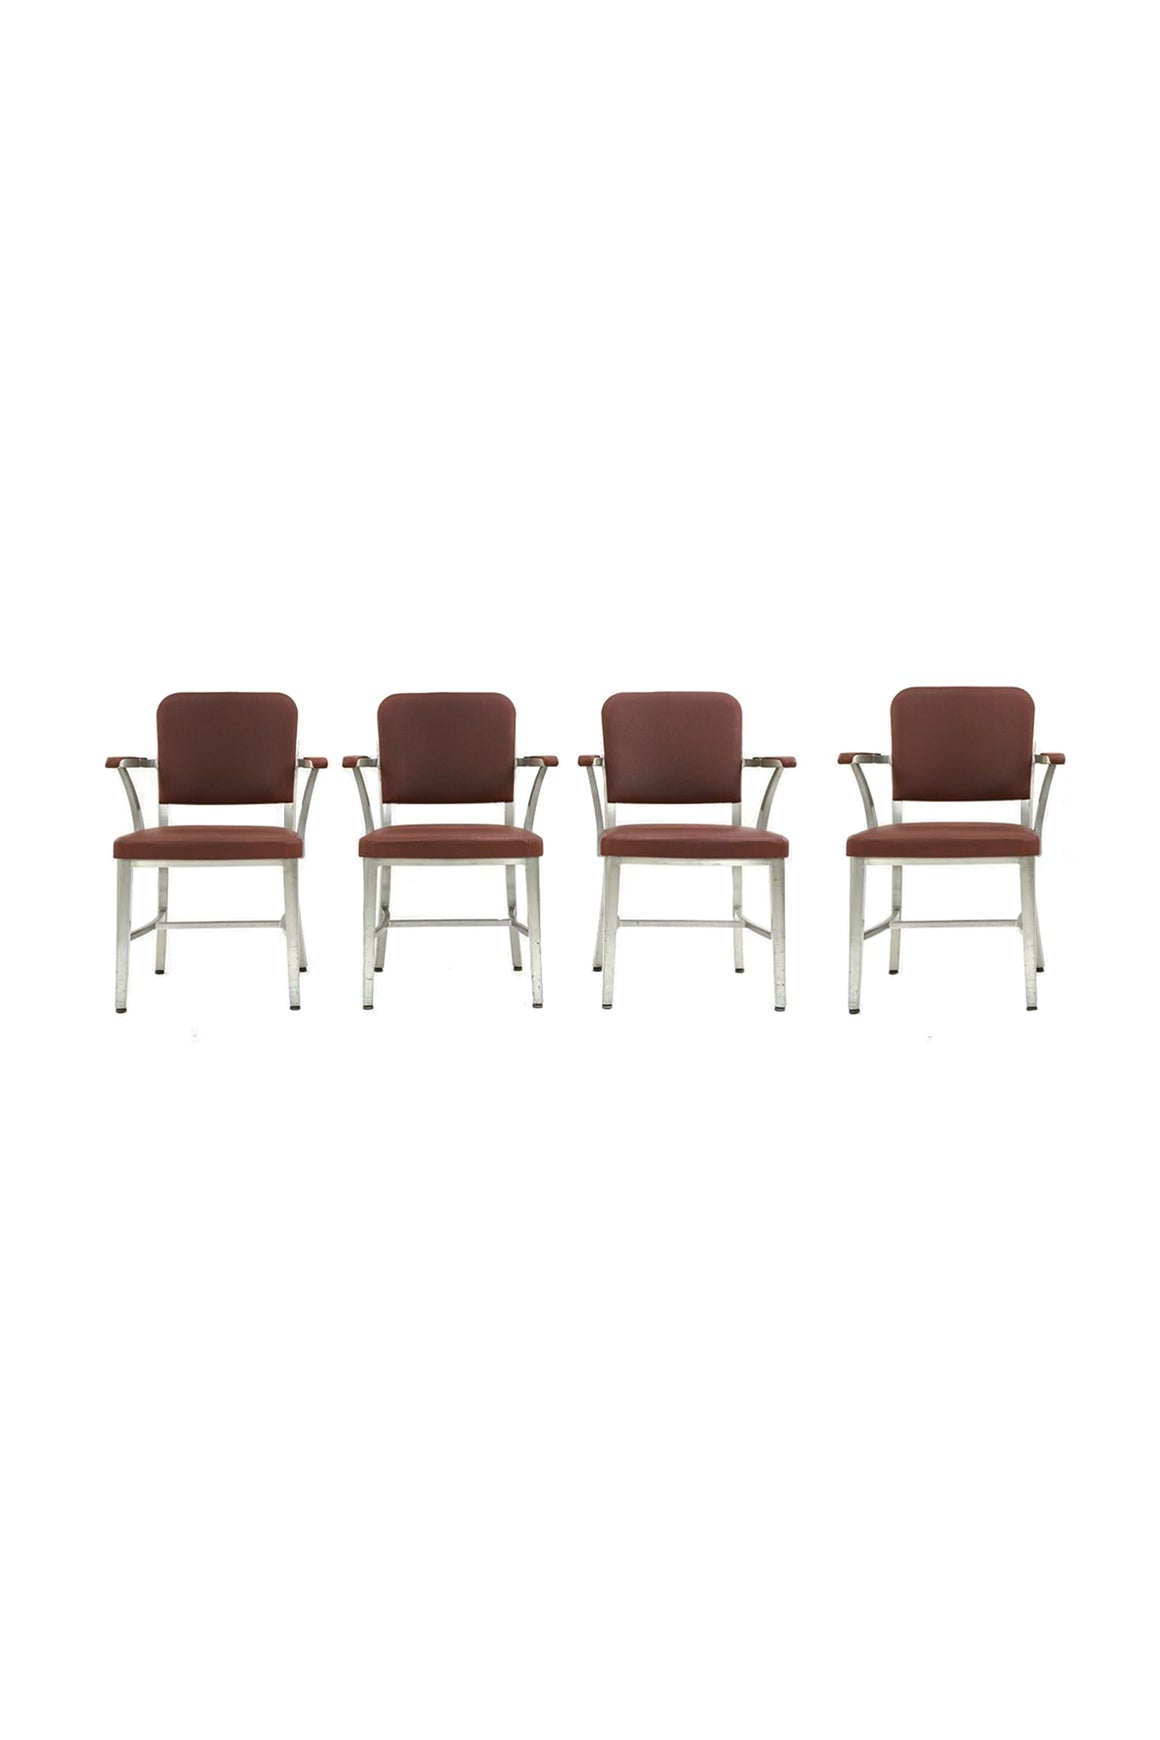 Set of 6 Goodform Aluminum Armchairs by the General Fireproofing Co. - ON HOLD